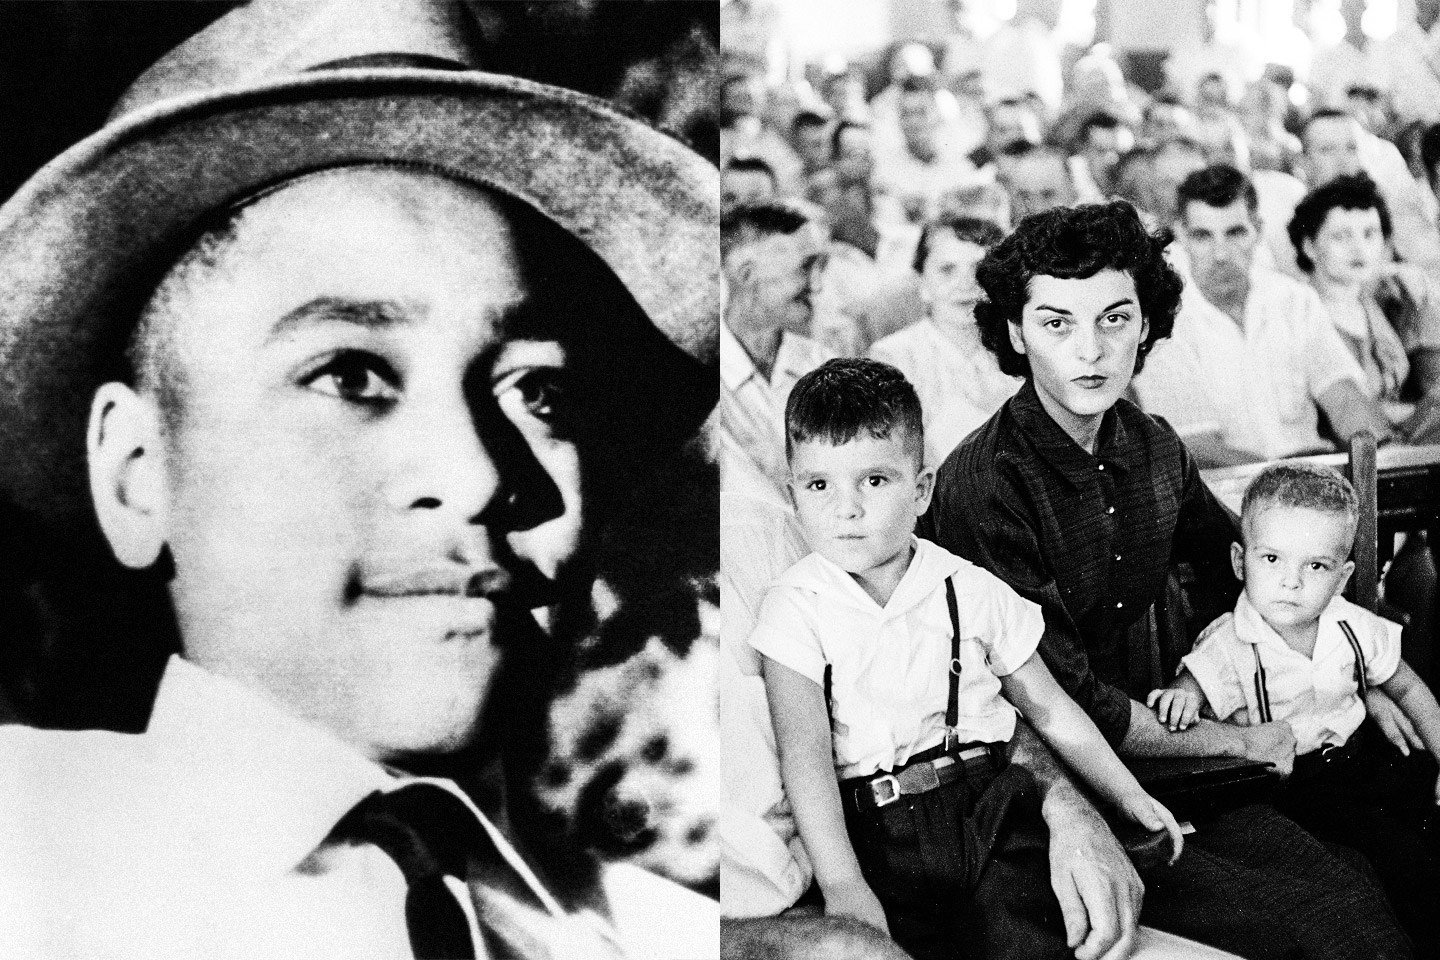 The Woman Who Claims Emmett Till Whistled At Her Admits It Was A Lie